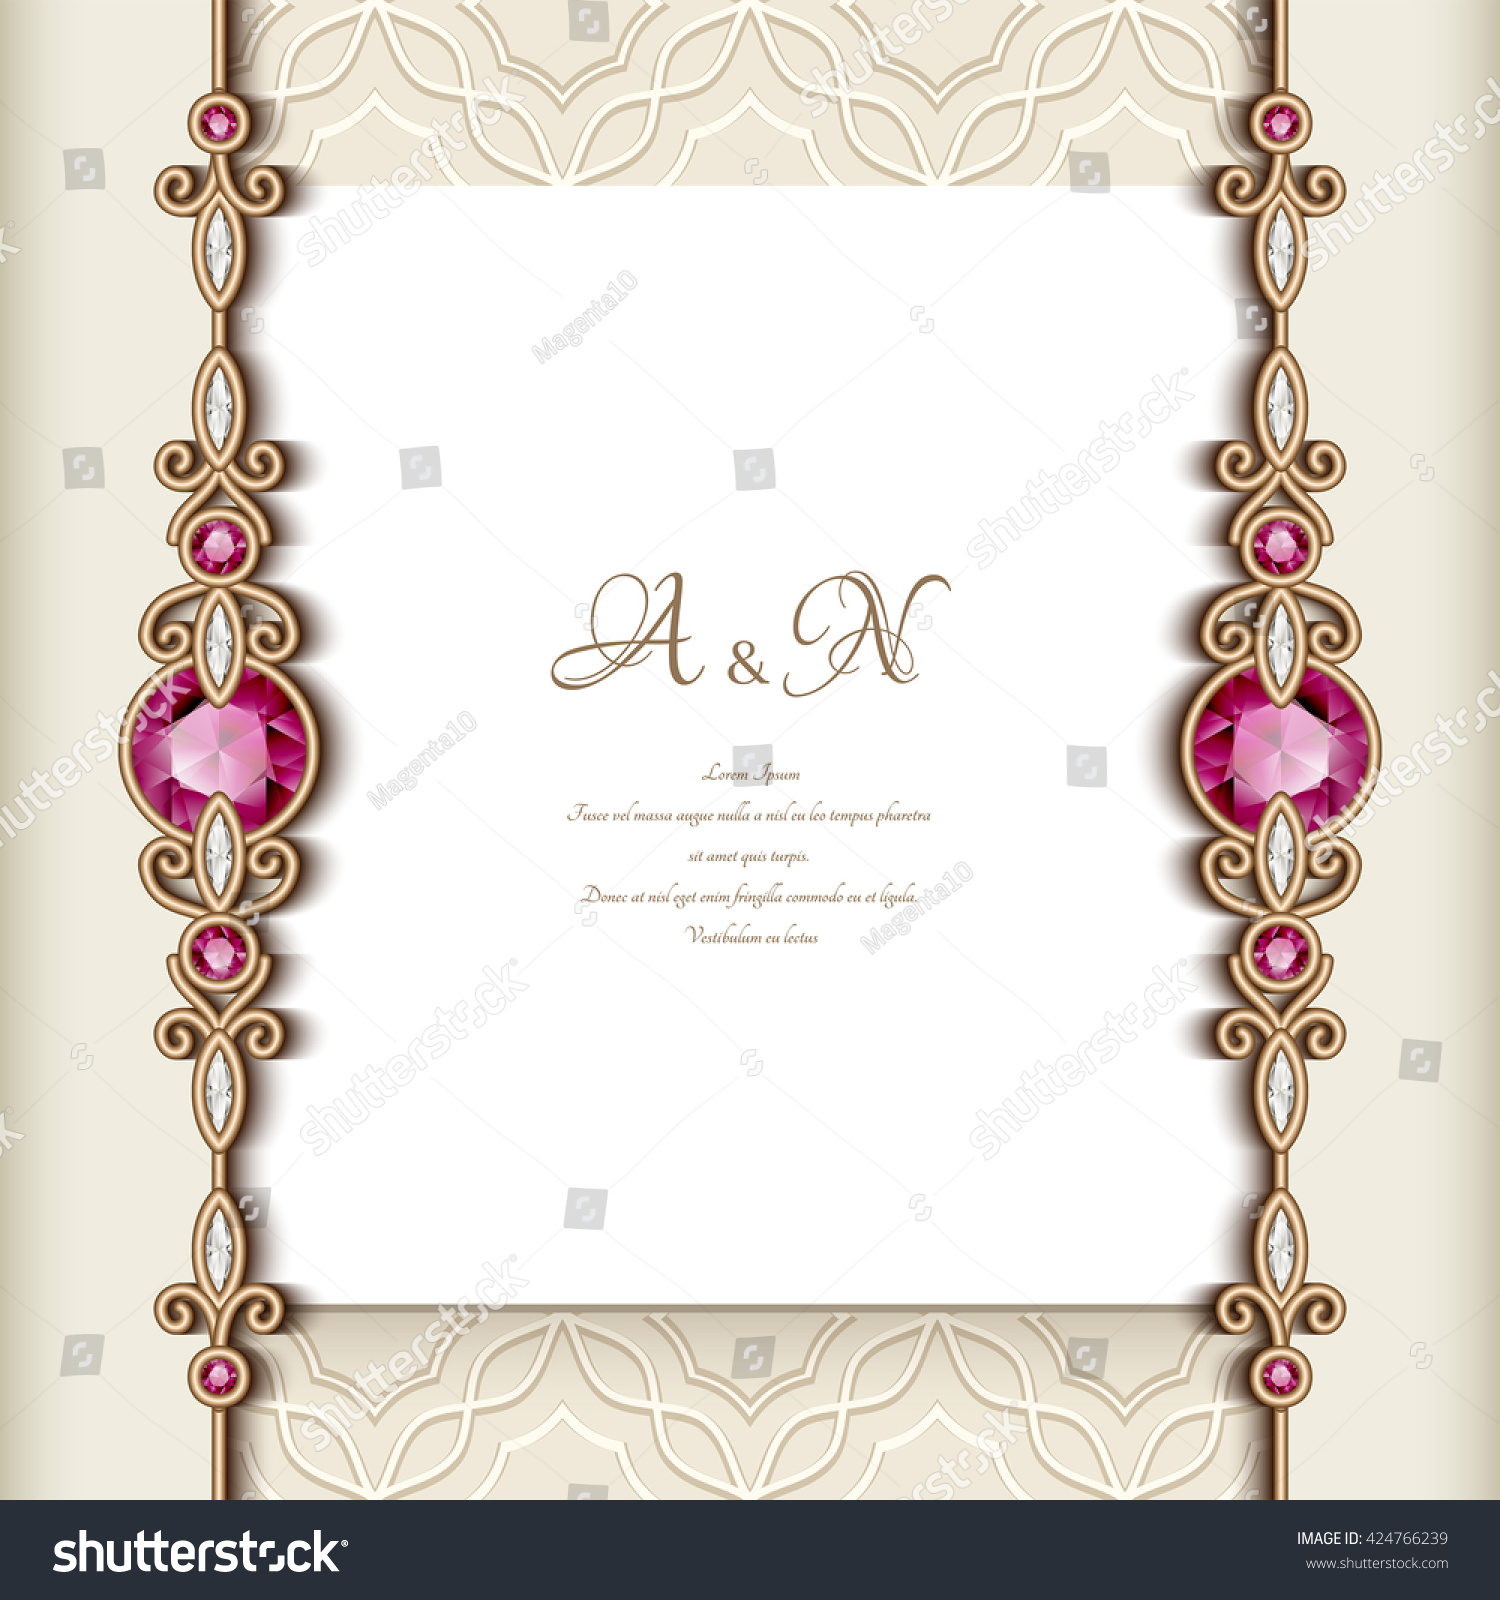 Elegant Greeting Card Diamond Jewelry Border Stock Vector (Royalty ...